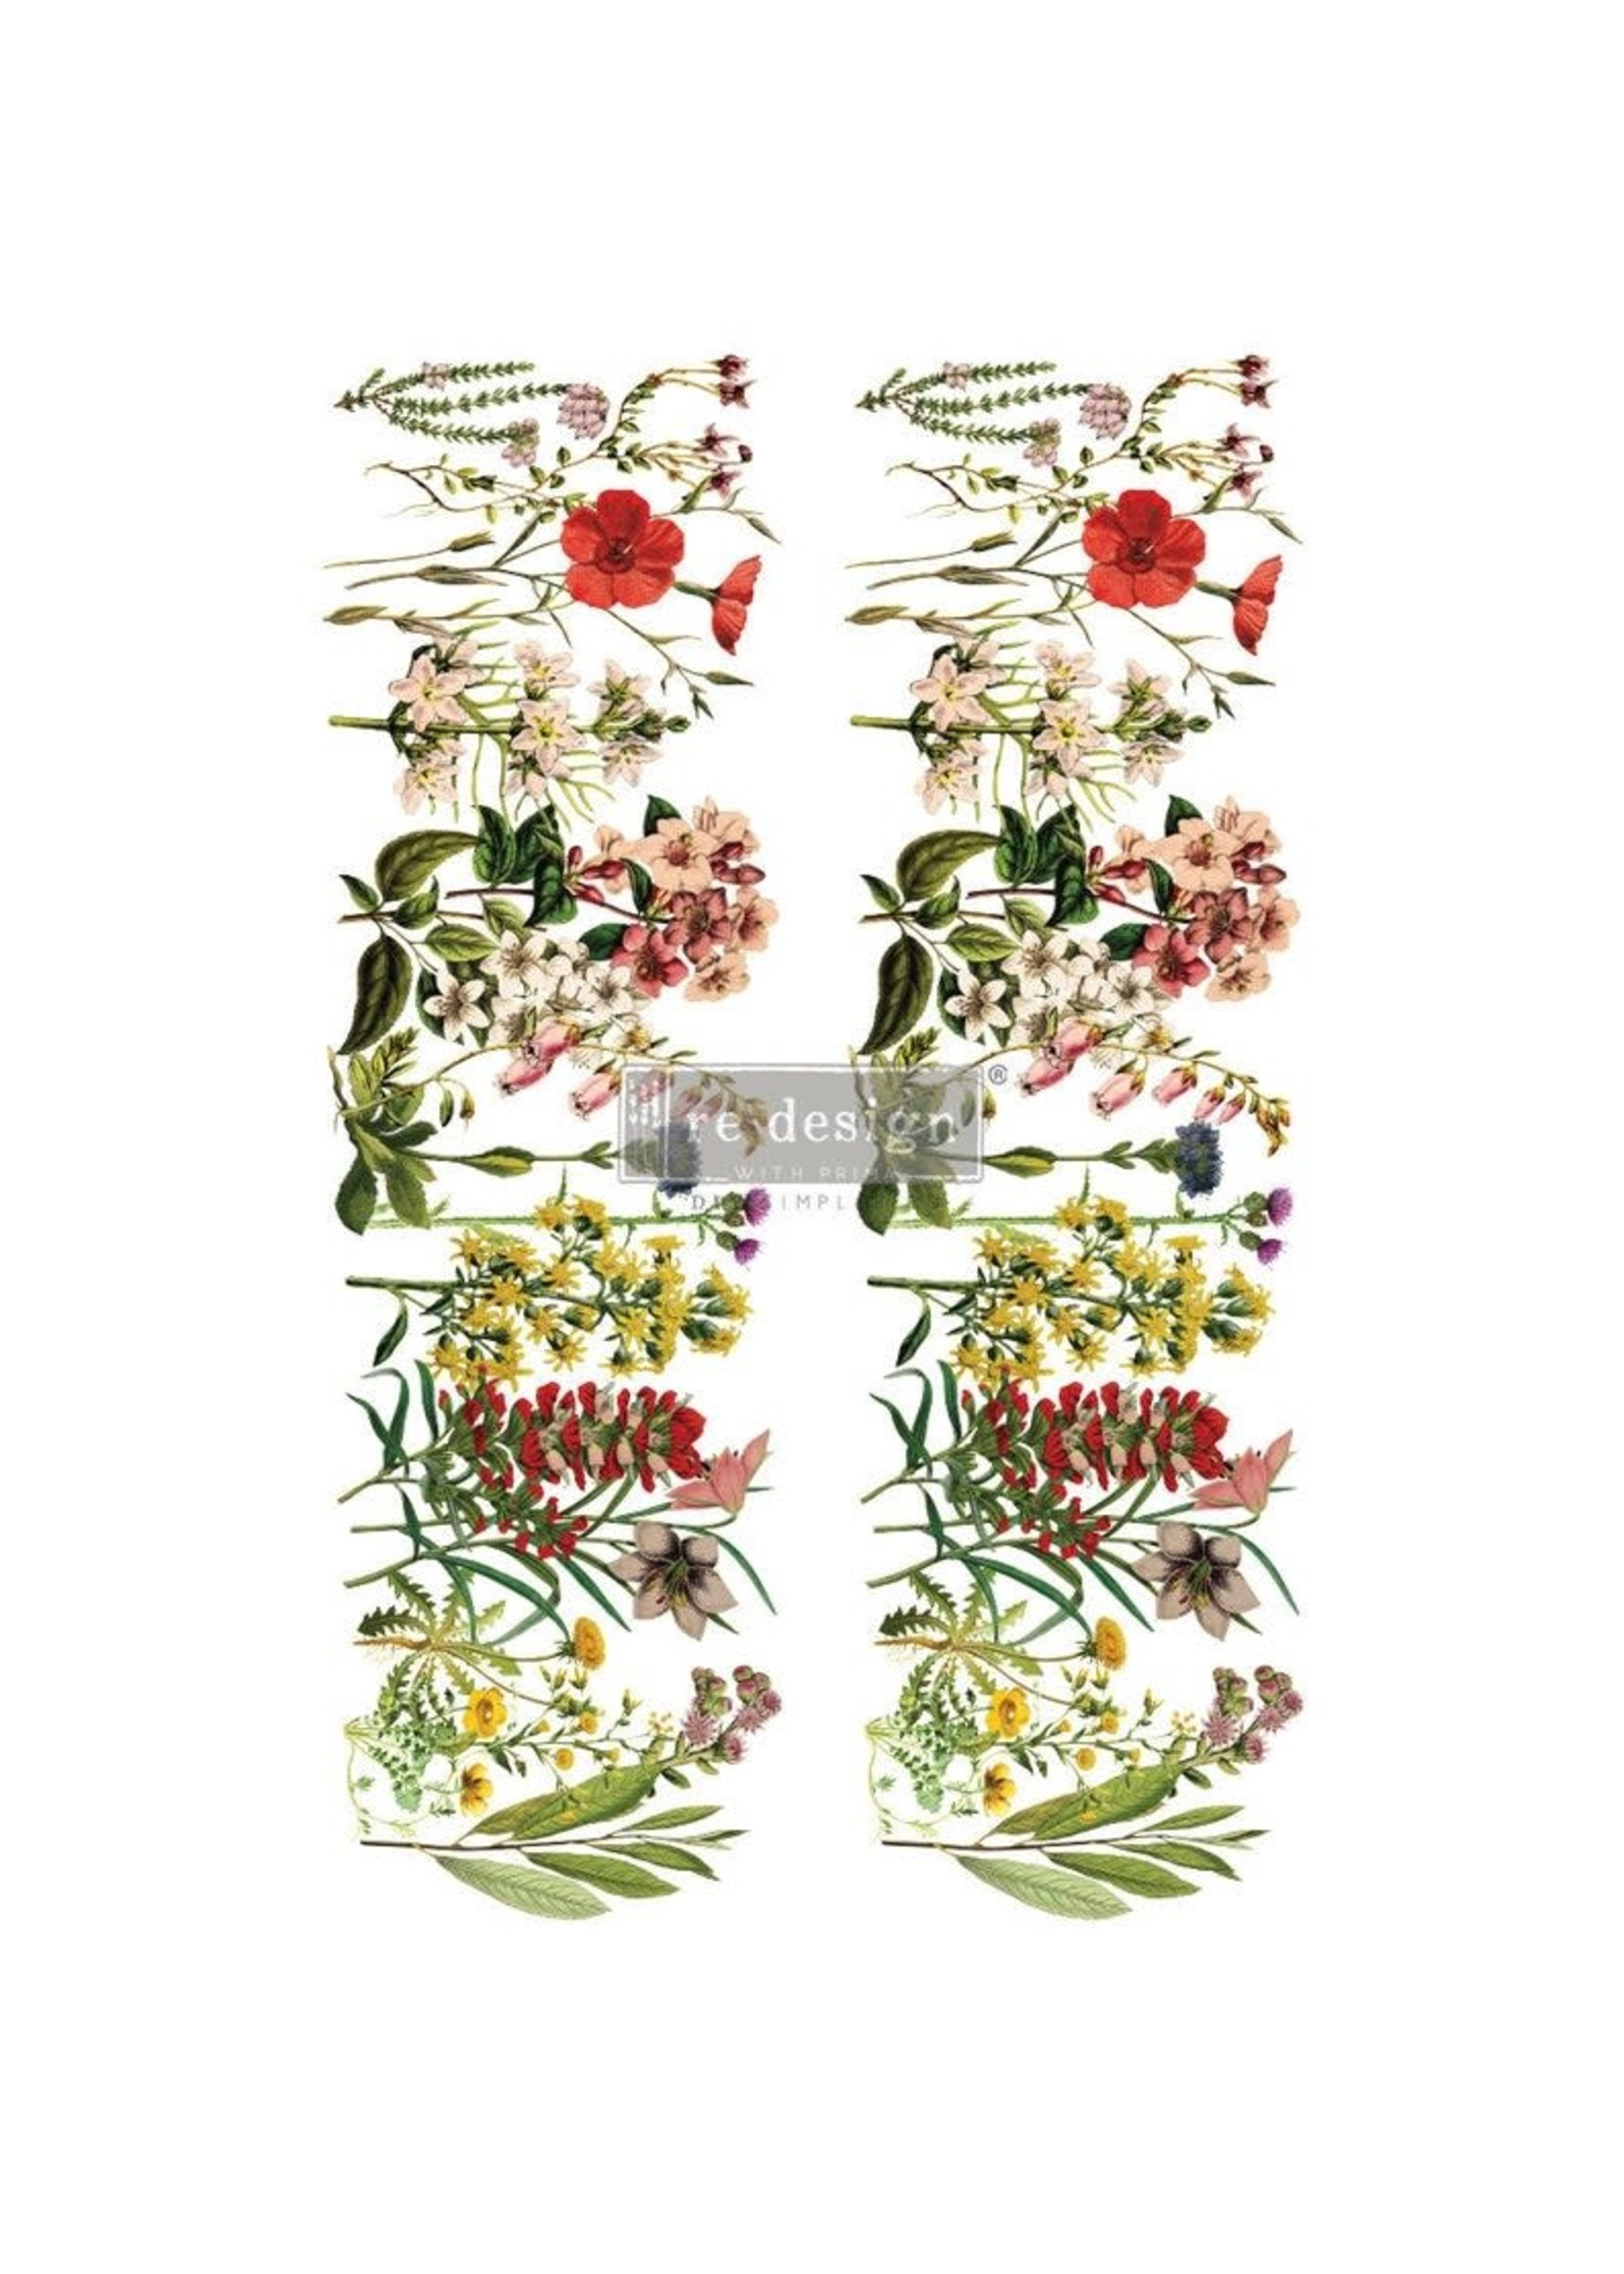 Re-Design with Prima® The Flower Fields Re·Design with Prima® Transfers